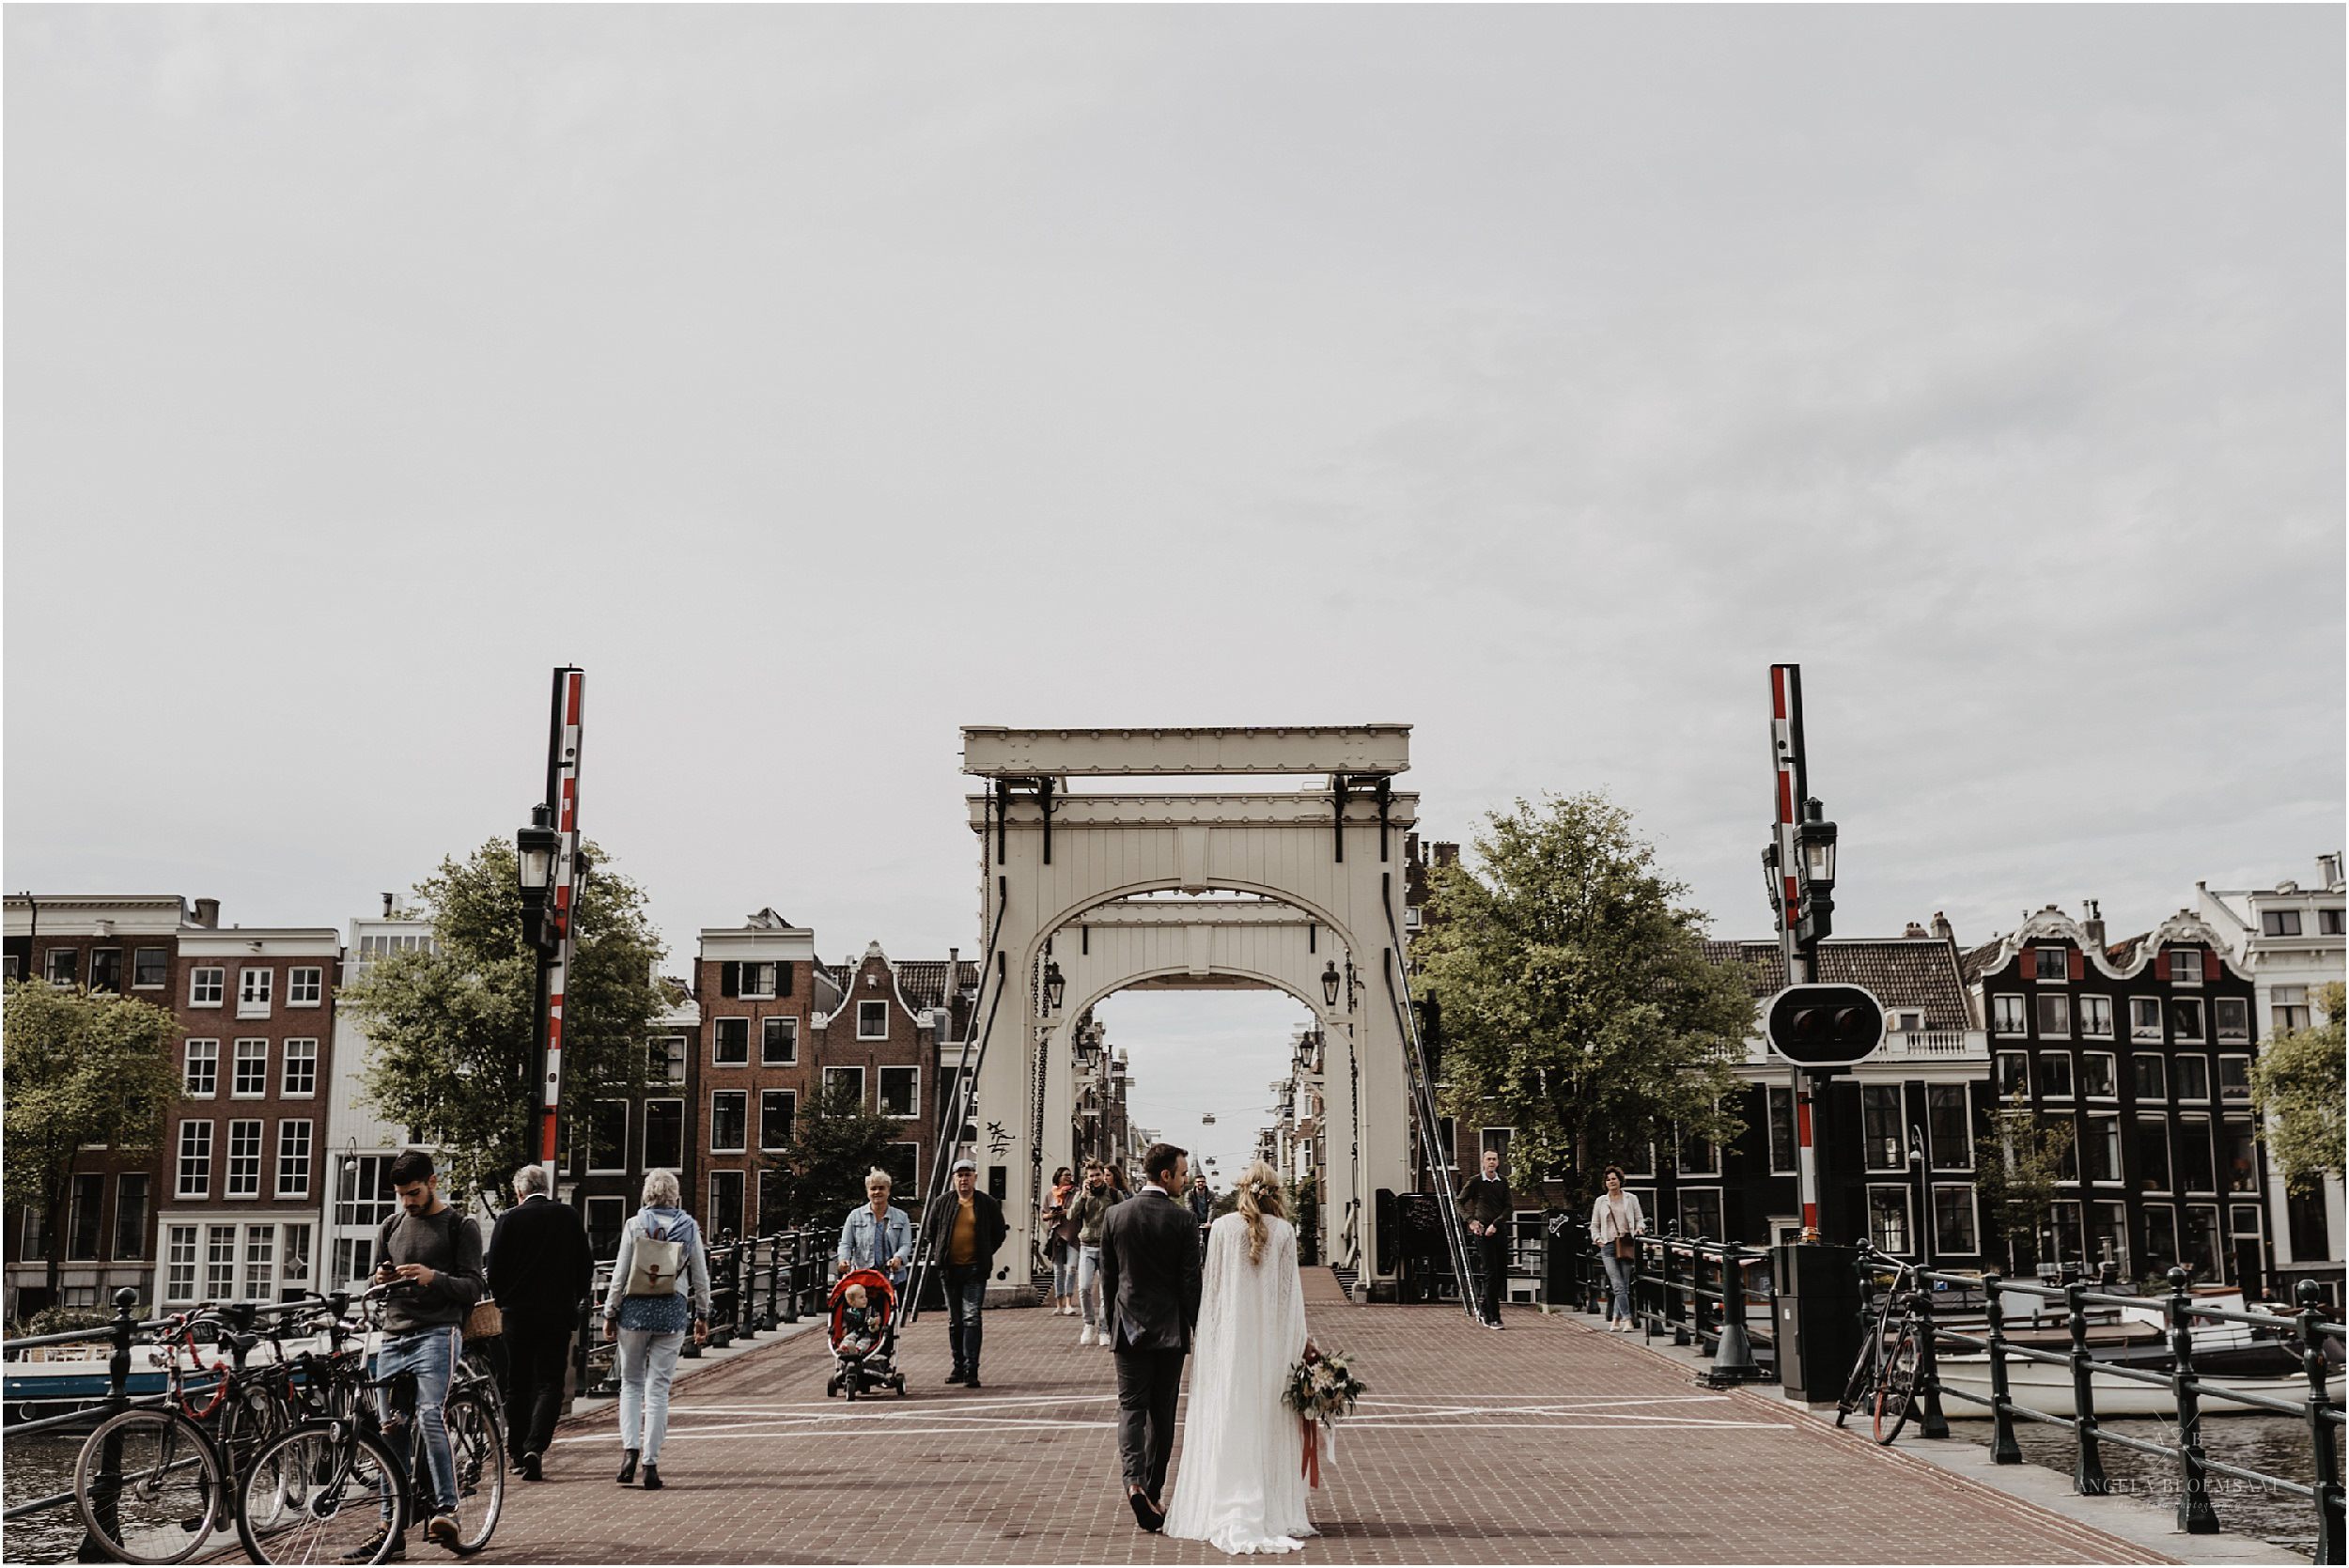 Wedding photographer Amsterdam Netherlands - bruiloft trouwen fotograaf - Angela Bloemsaat Love Story Photography